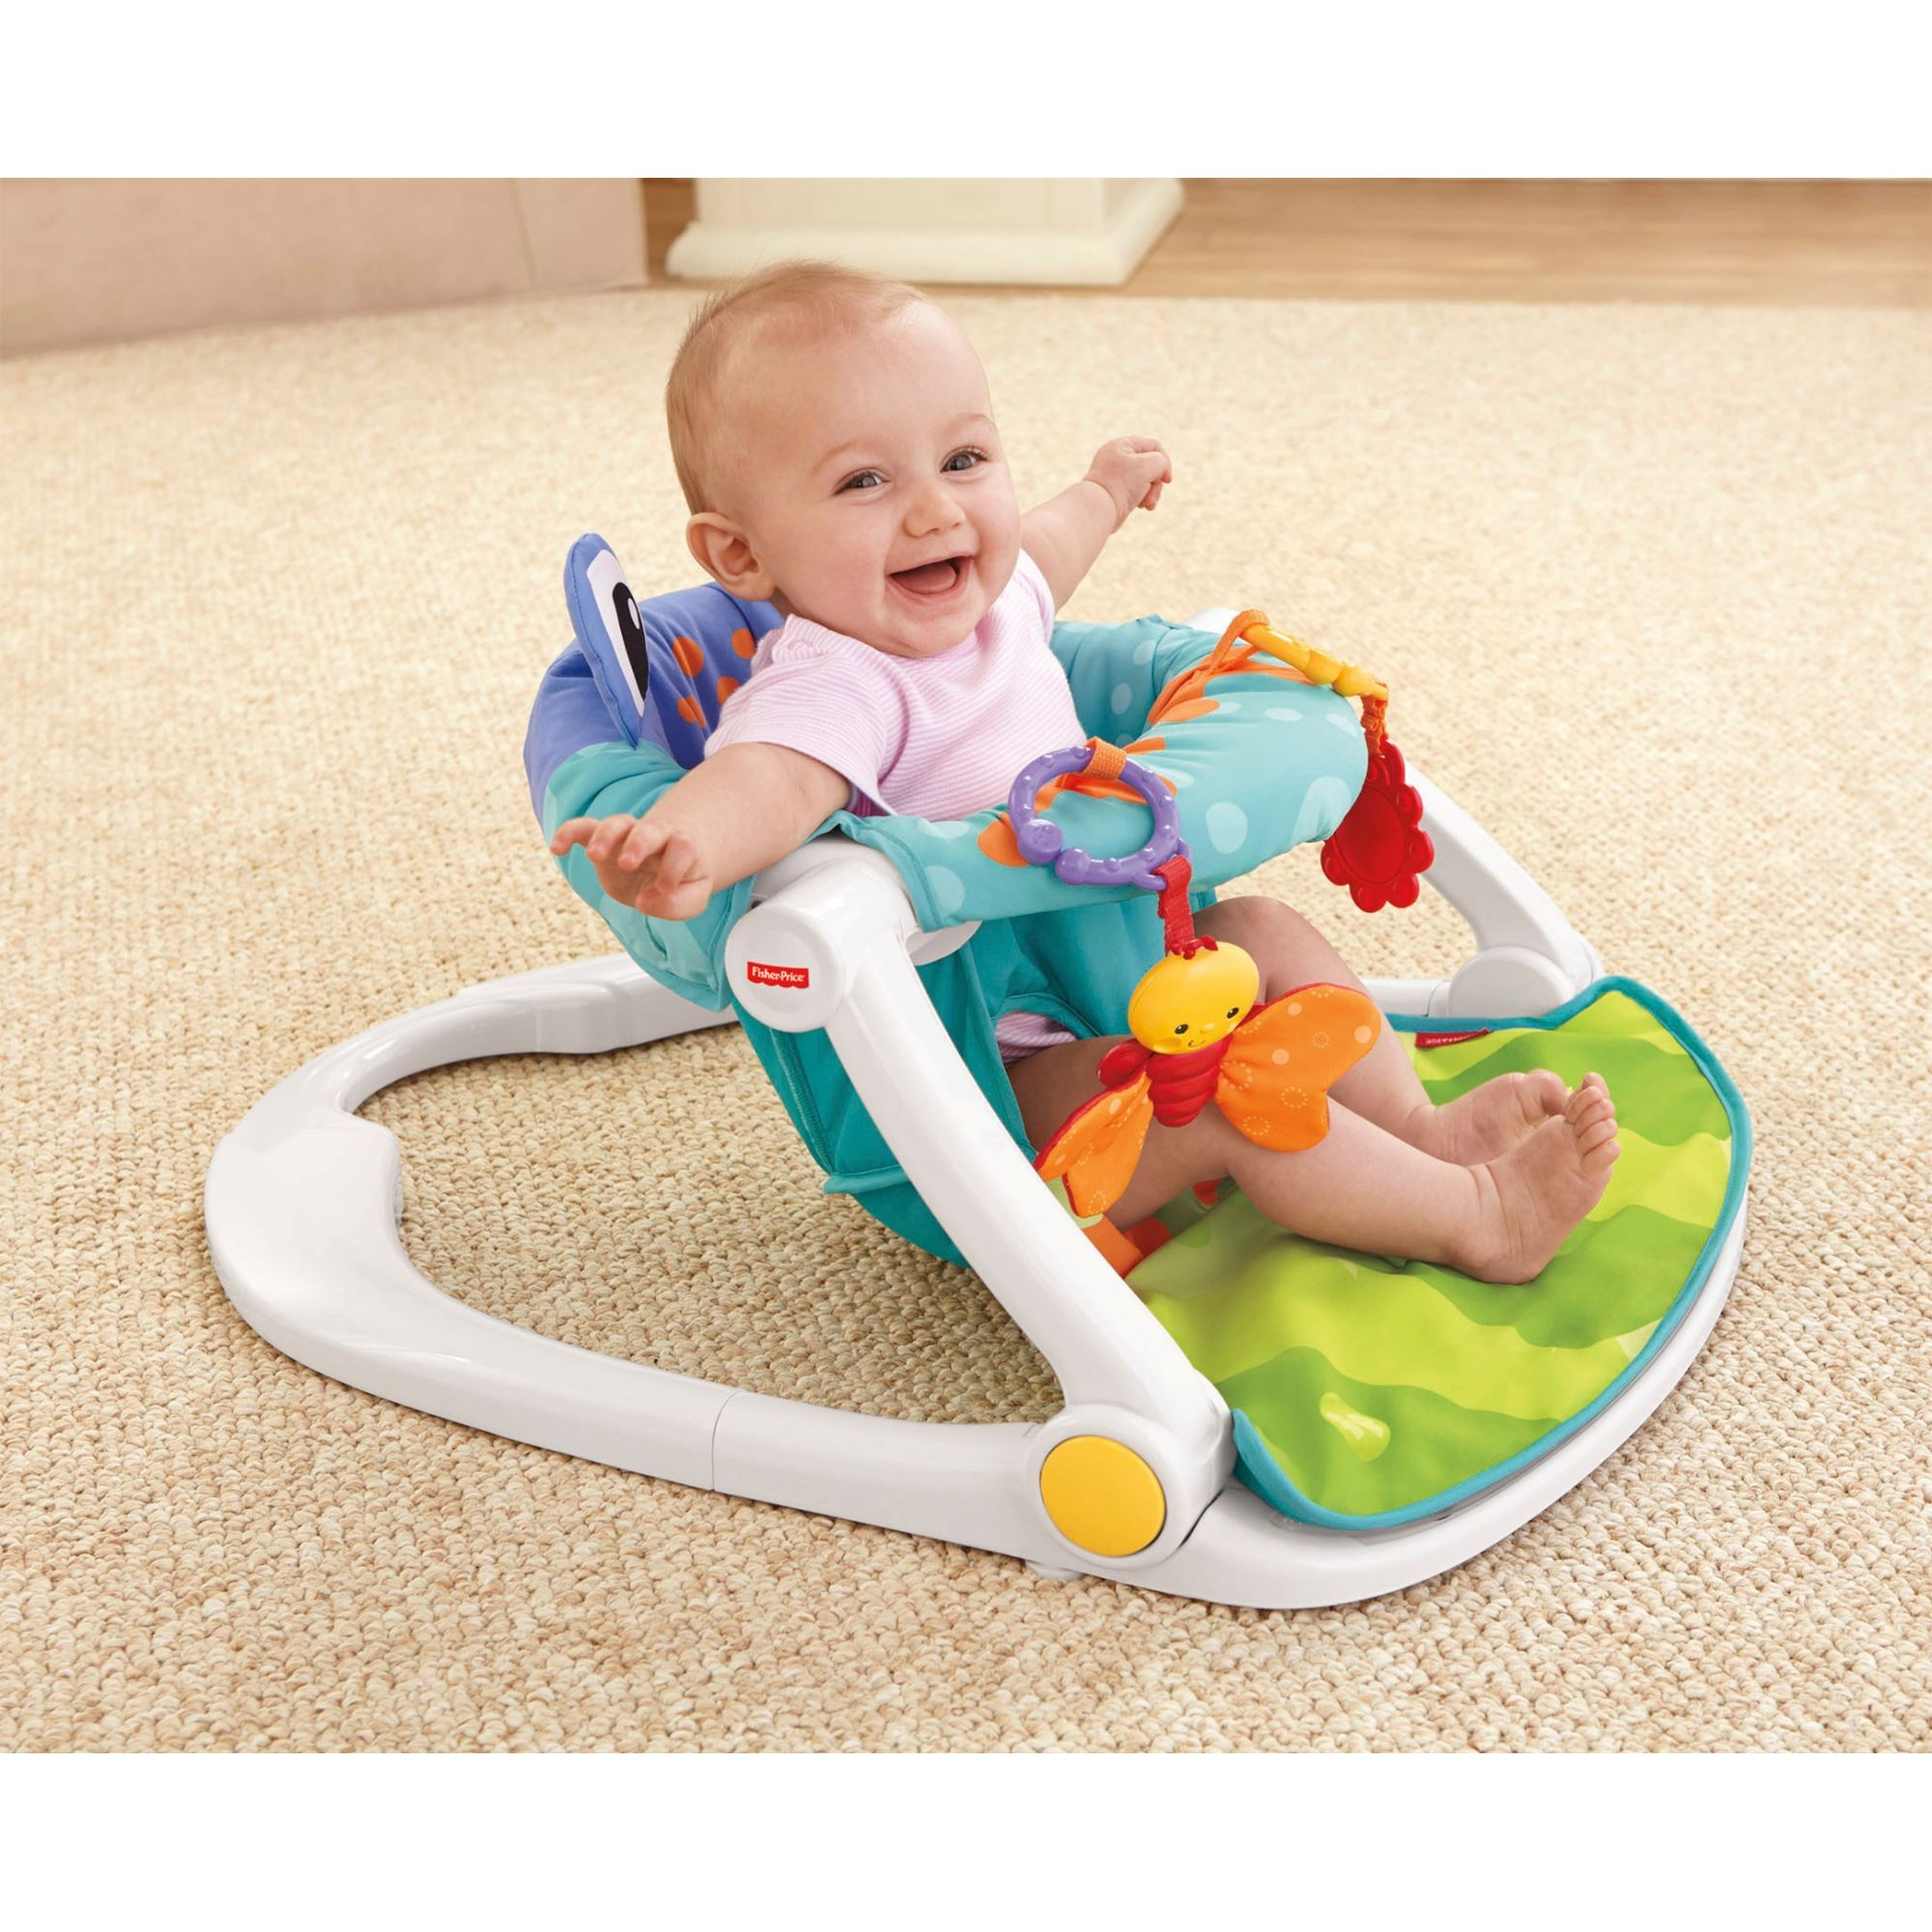 FisherPrice Rainforest SitMeUp Floor Seat